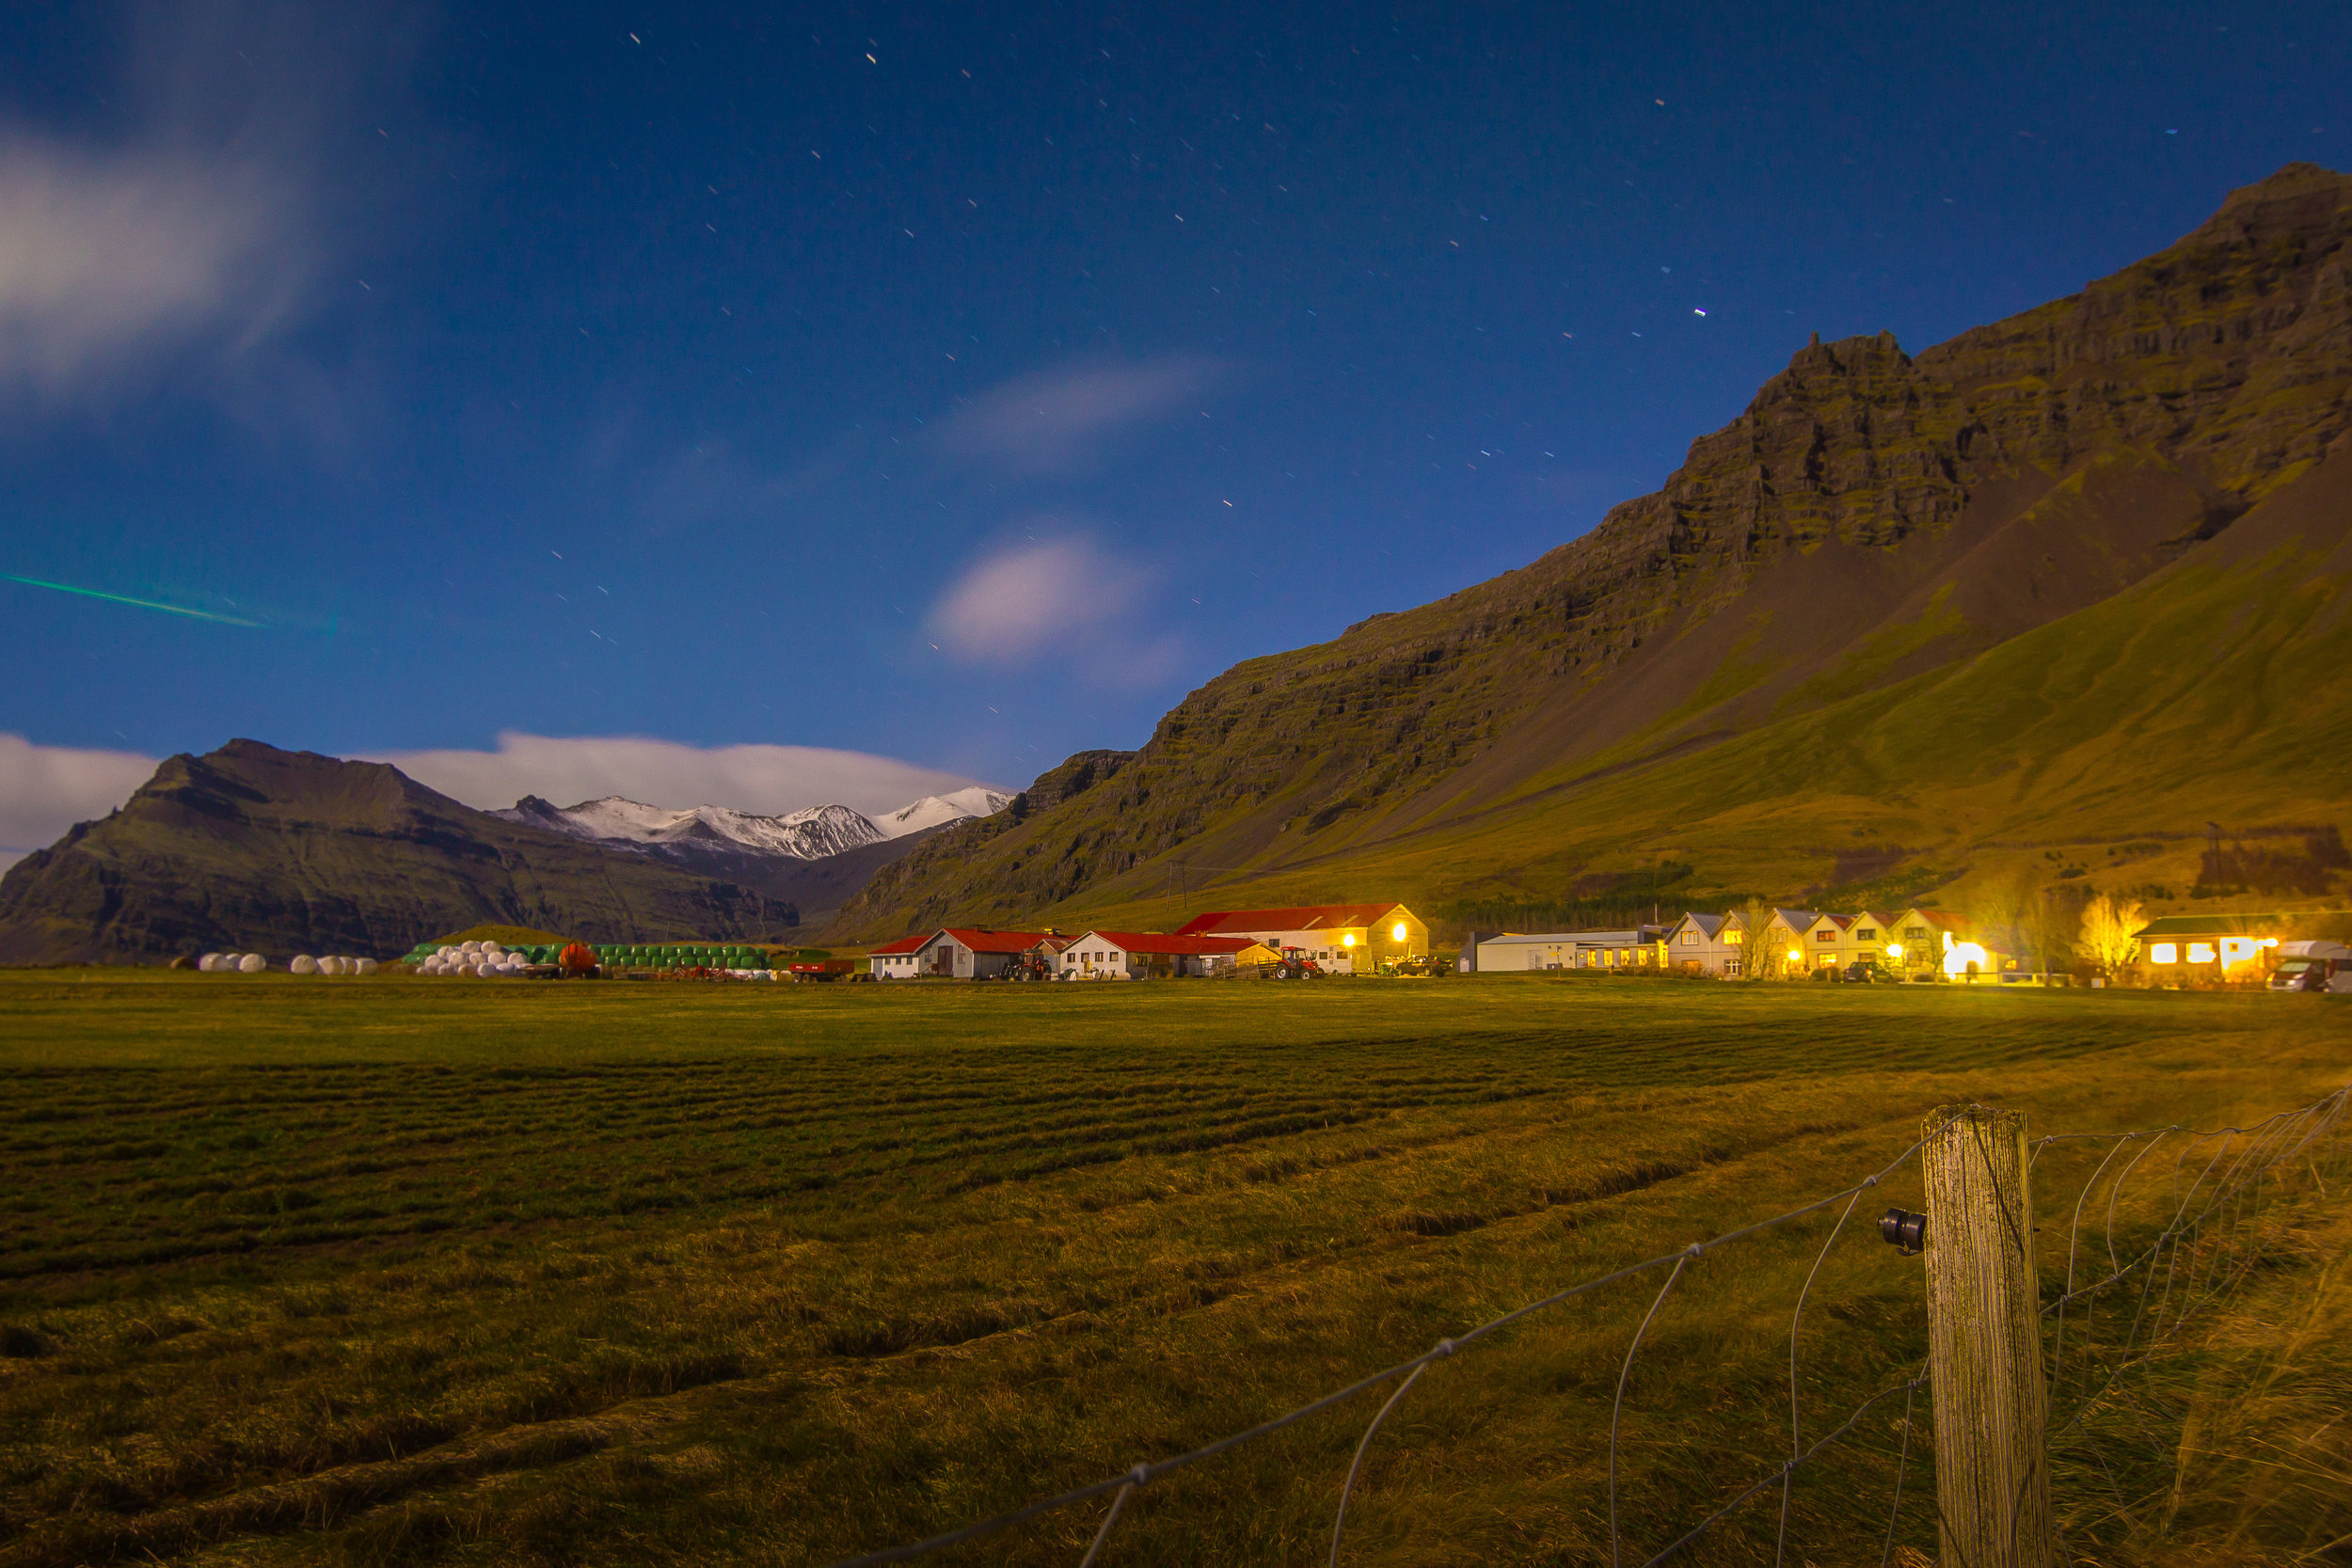 This shot was taken at 1AM in southern Iceland. I stood in the middle of a farm field hoping the northern lights would show. It never came and it wasn't until I processed this photo did I see the small green streak on the left. The next day, I overheard others who were some miles away talk about seeing the lights in full. If only I had rented a car.